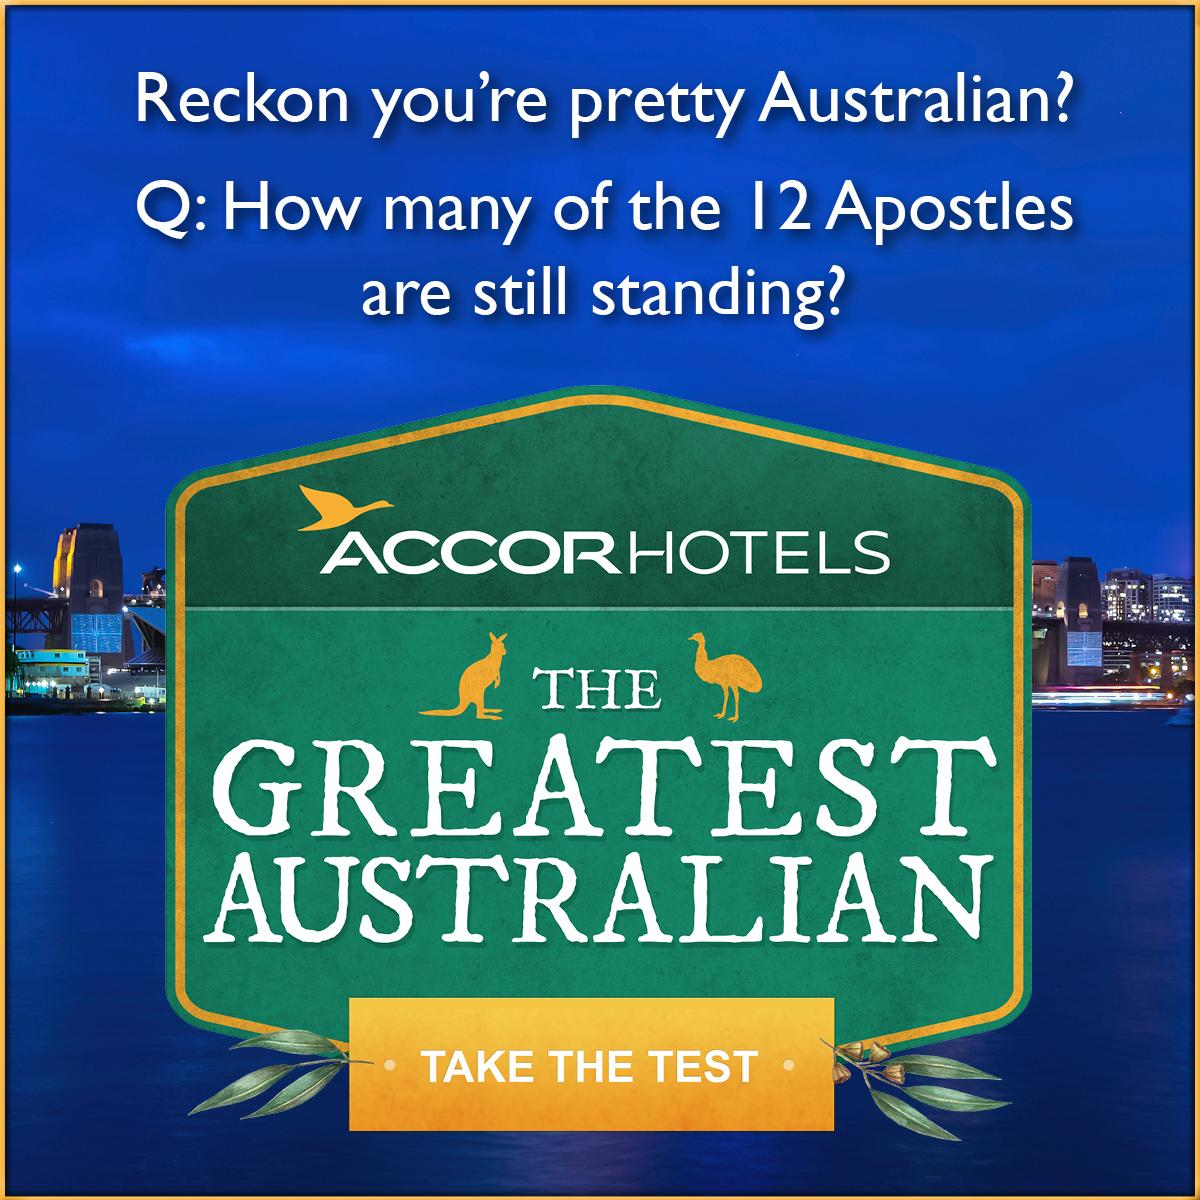 How Aussie are you? Take the quiz, share your result and you could win great prizes http://t.co/DEoUbhnEQ1 http://t.co/l10vyUUhu6